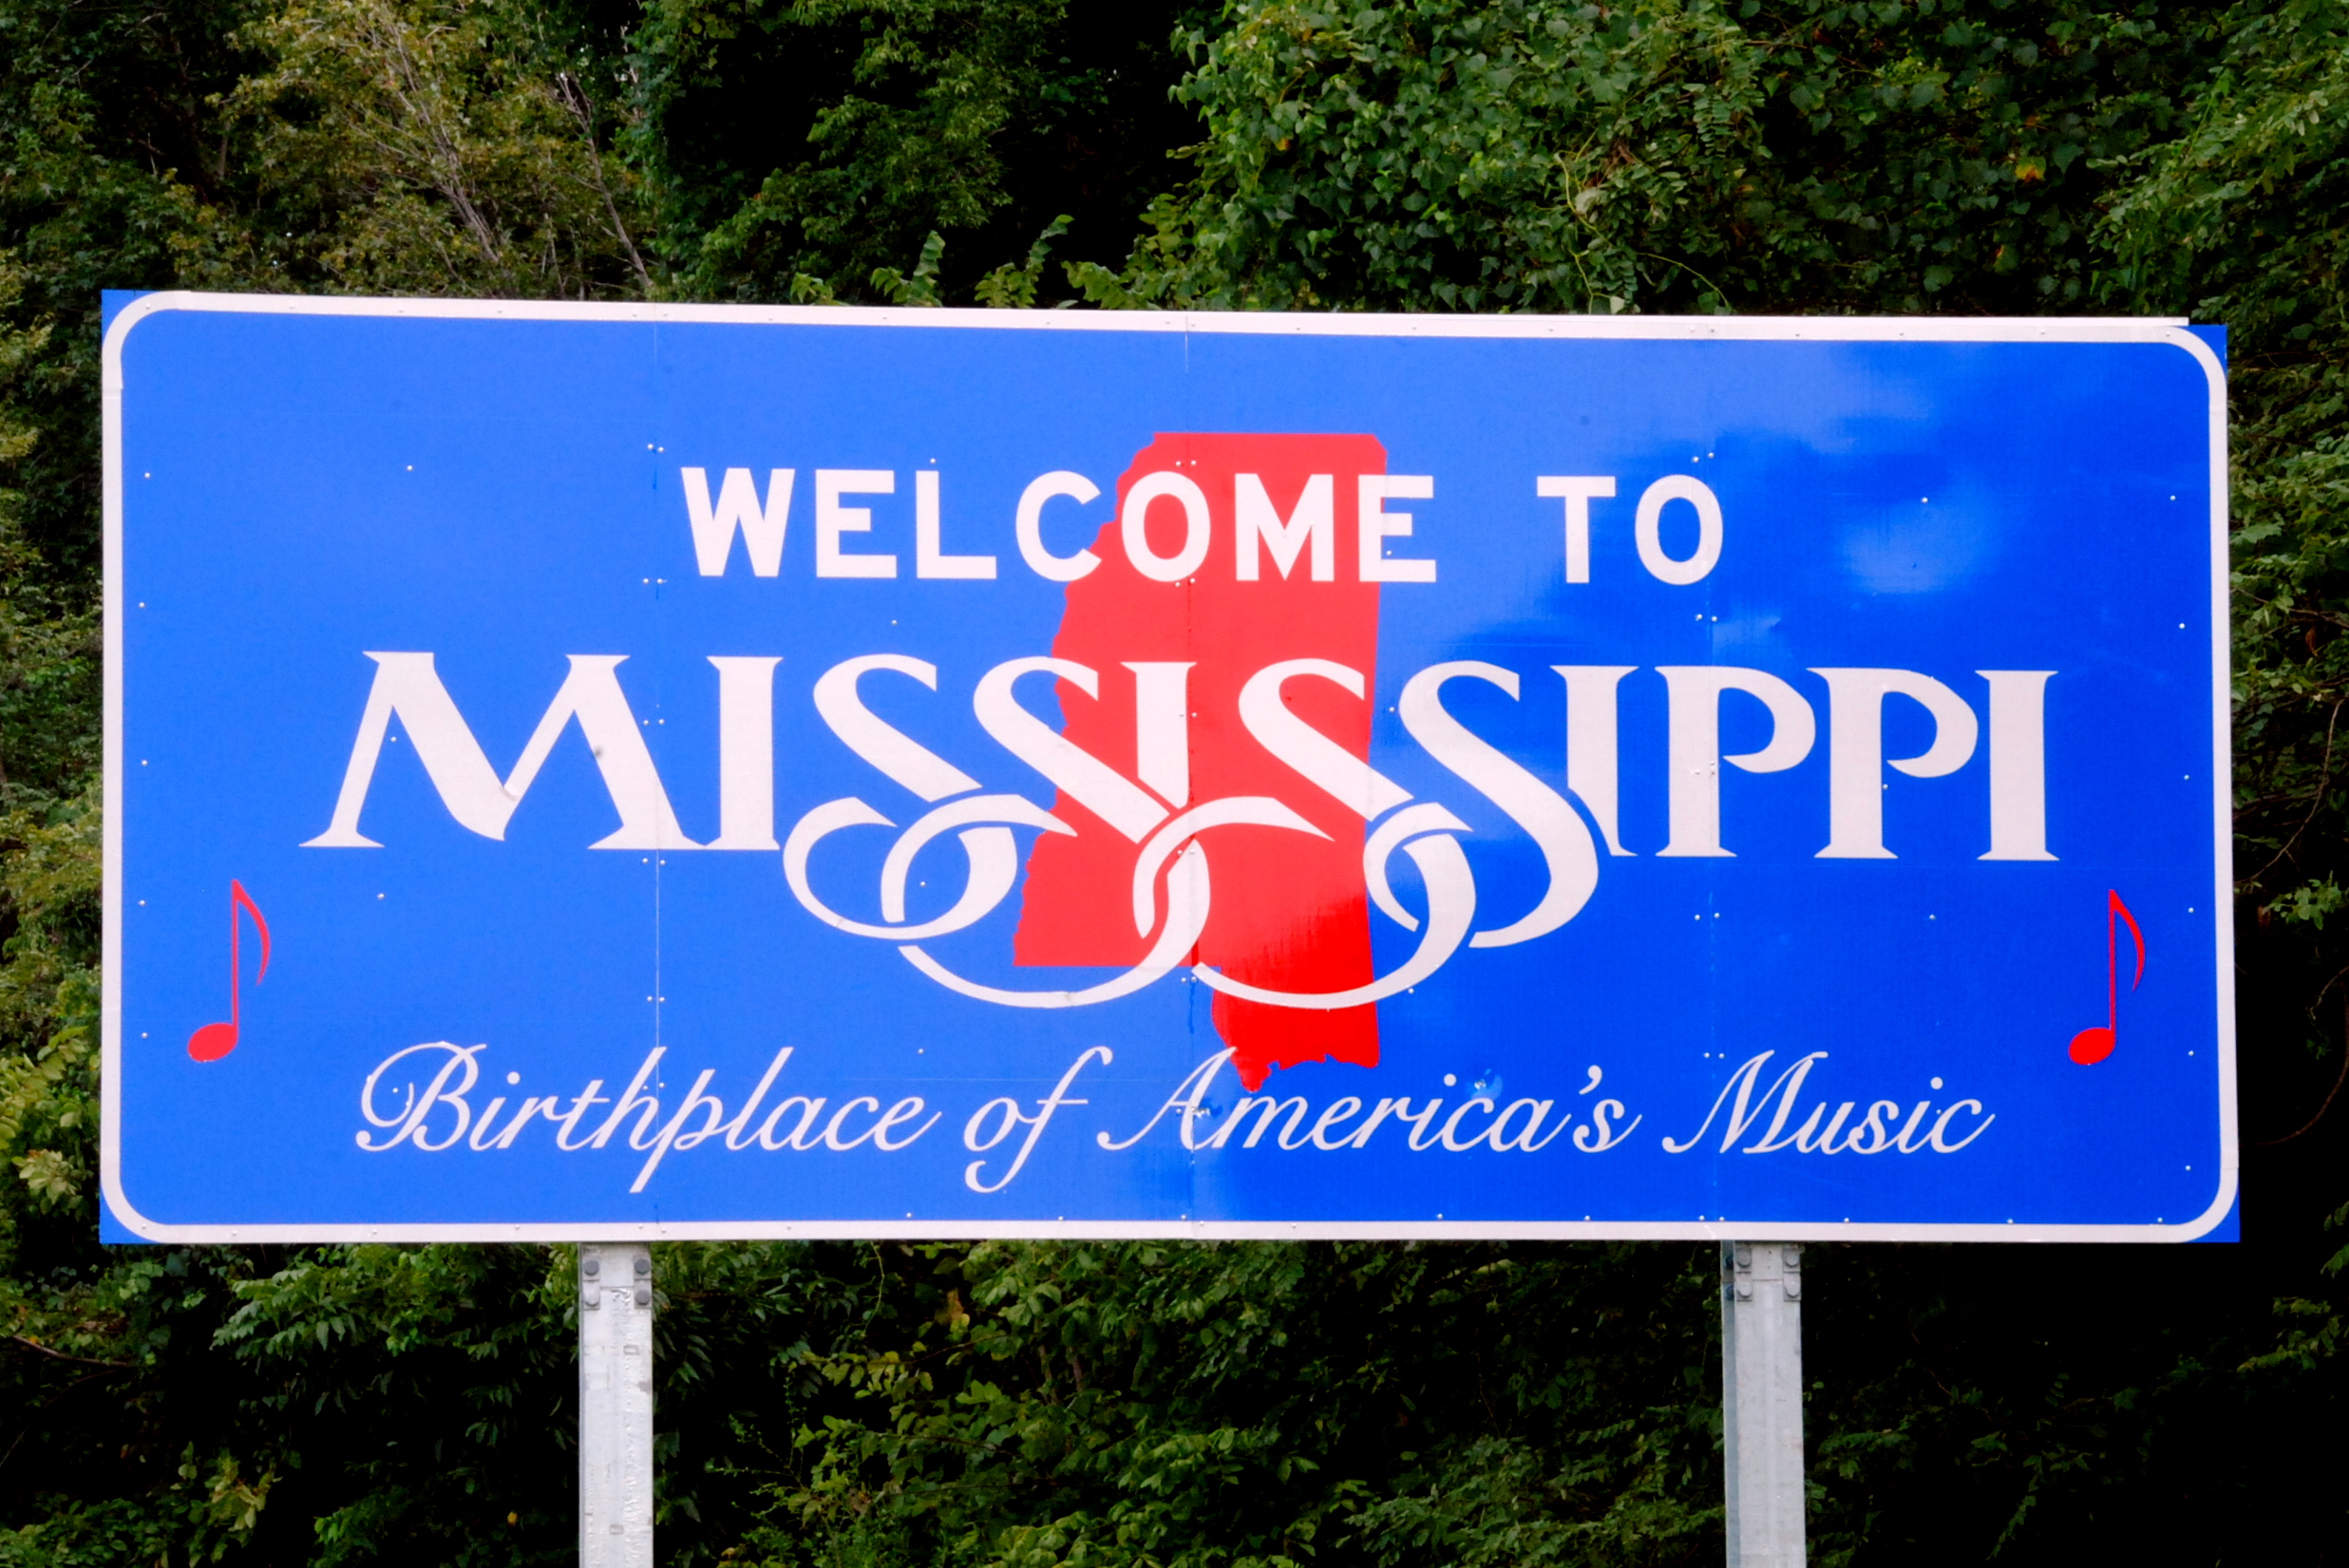 Hd Glitter Wallpapers also Tornado history 26 mile wide o likewise Reasons To Love Mississippi further Arizona additionally Lindsey Pelas. on austin minnesota